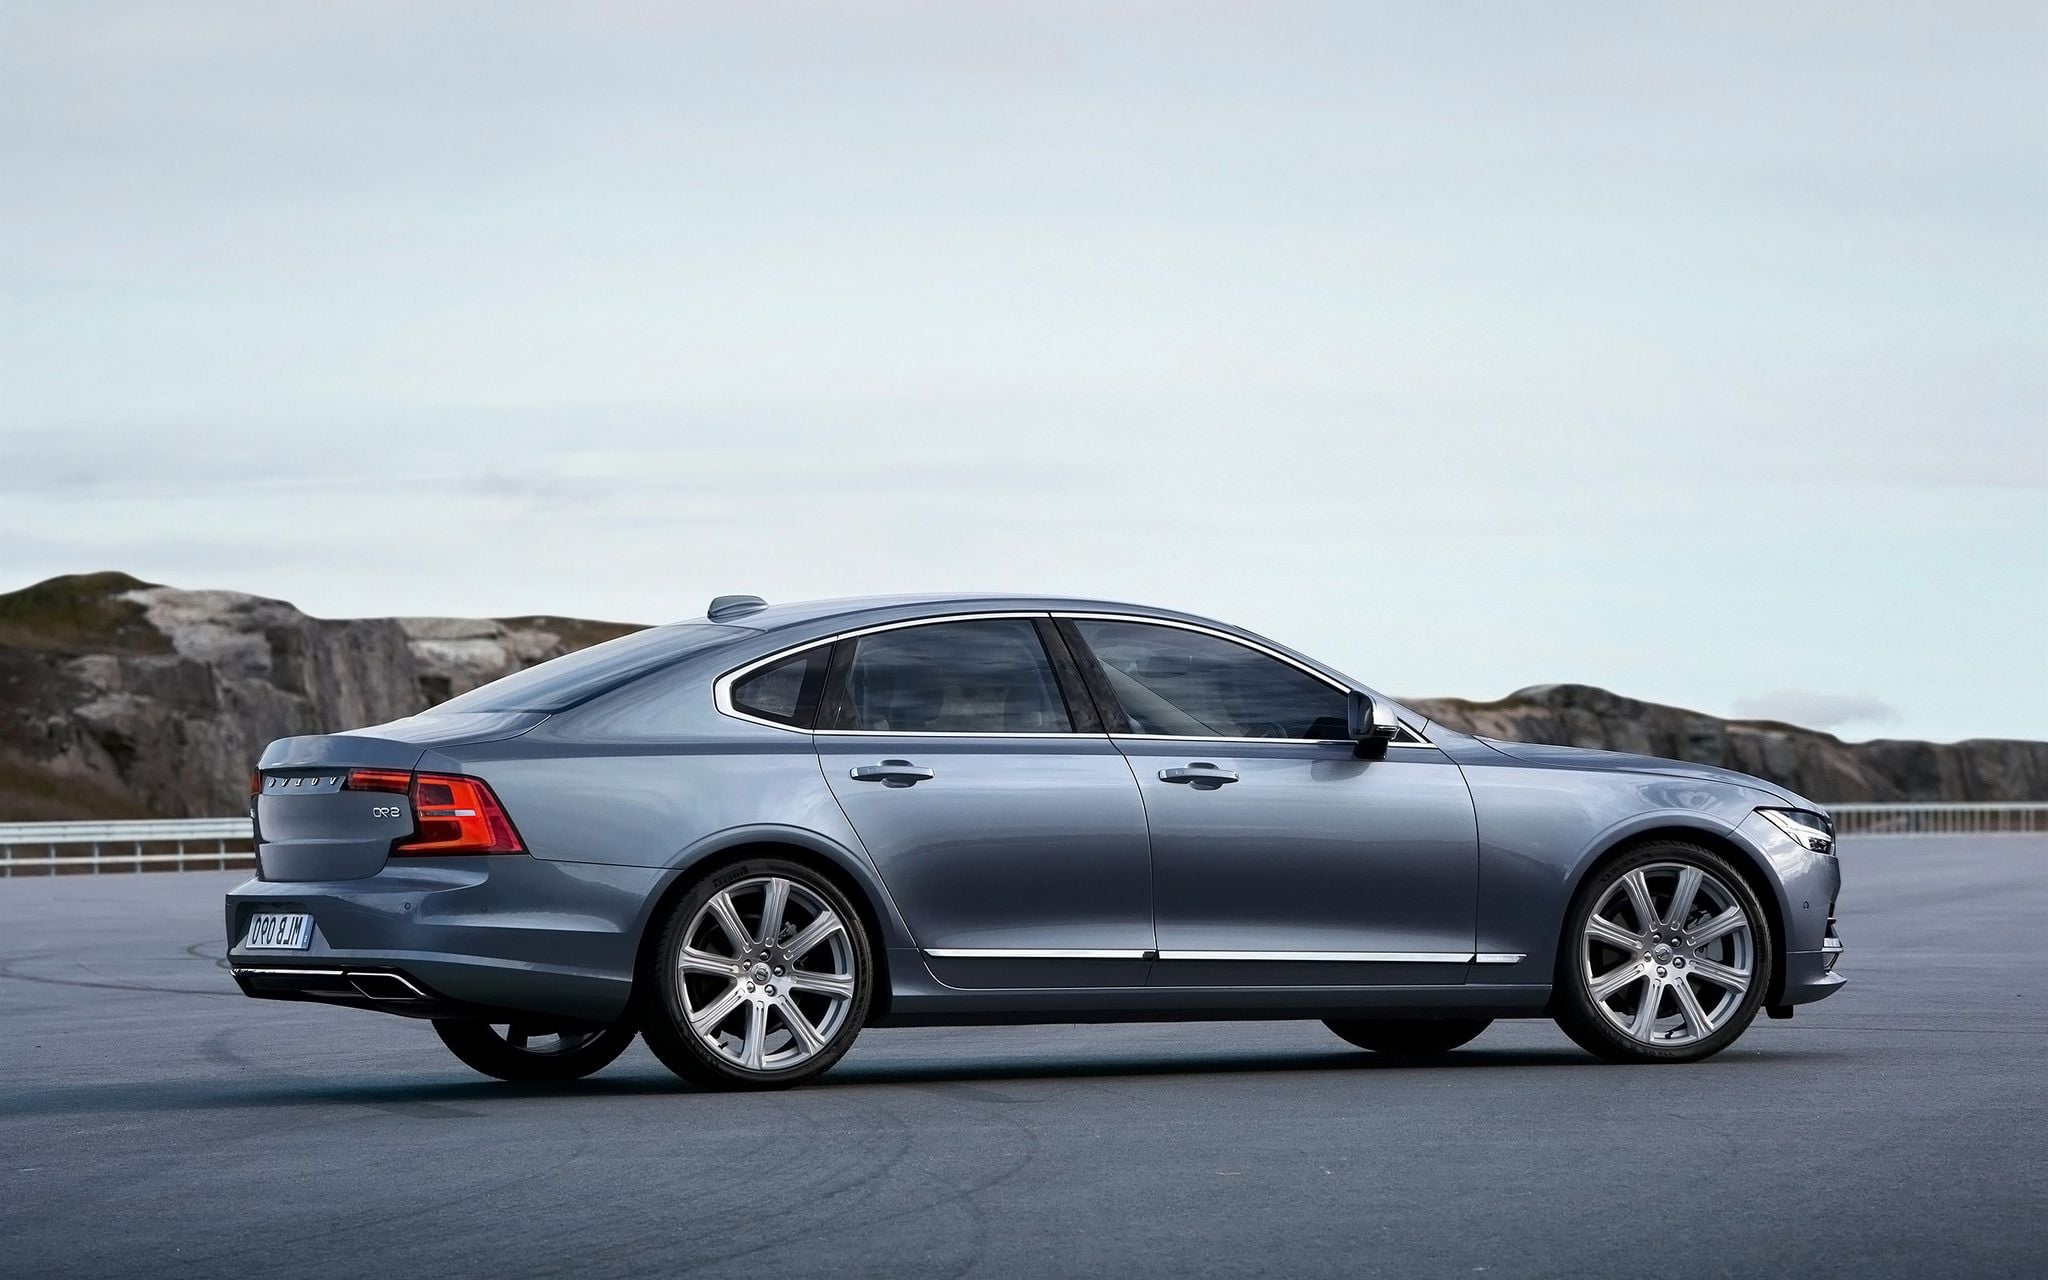 2016 Volvo S90 Wallpapers Hd High Quality Download